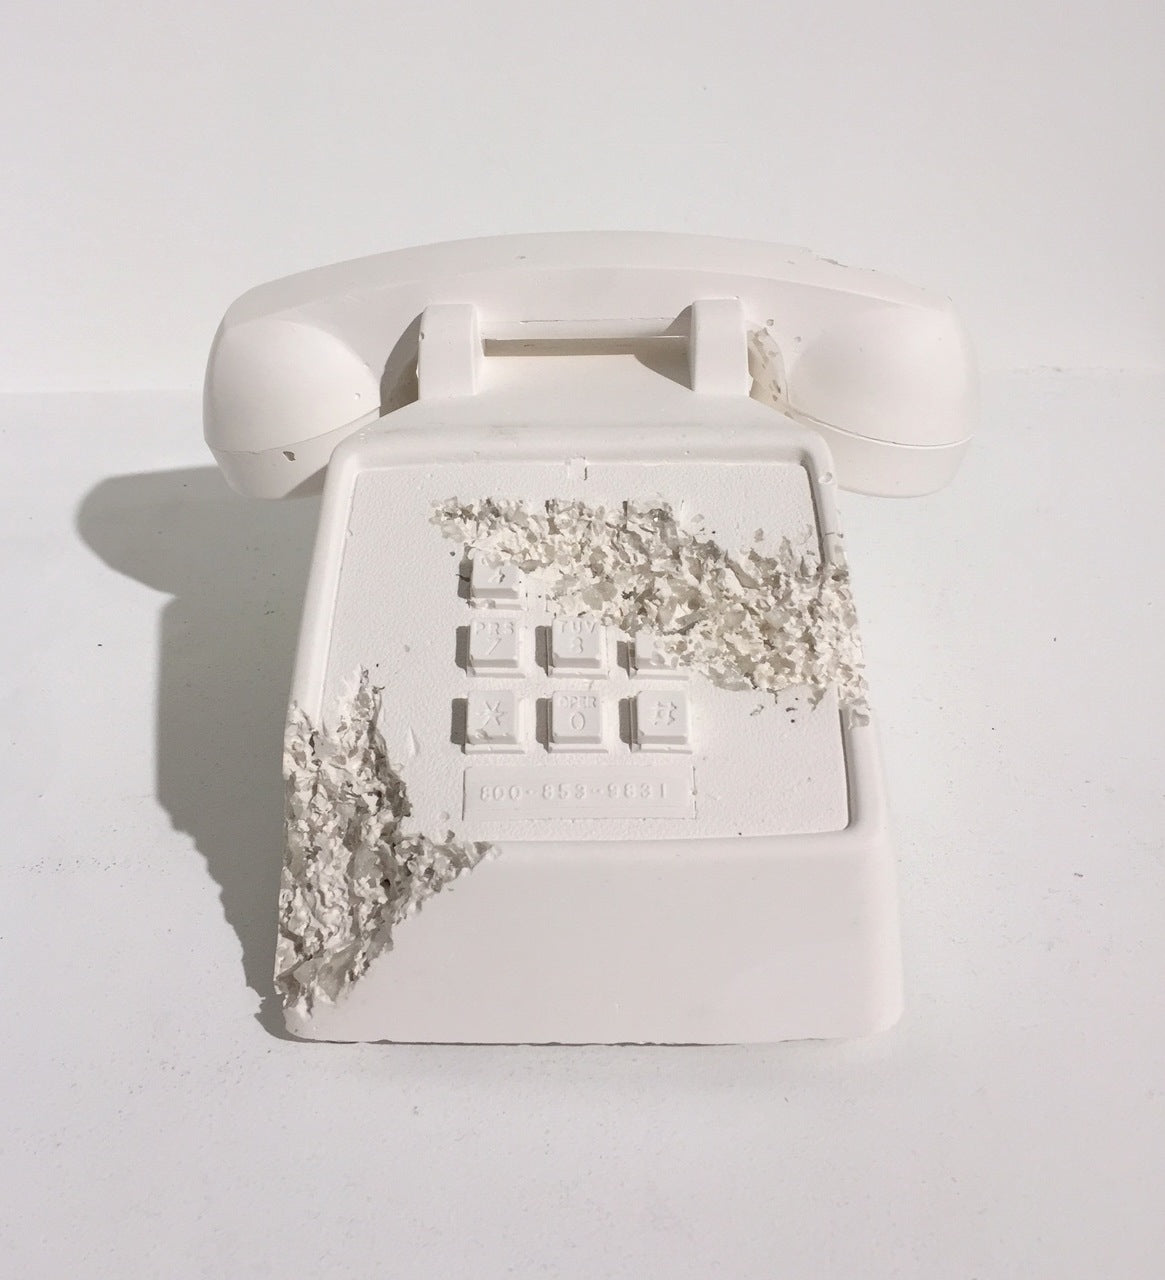 Daniel-Arsham-Telephone-Sculpture